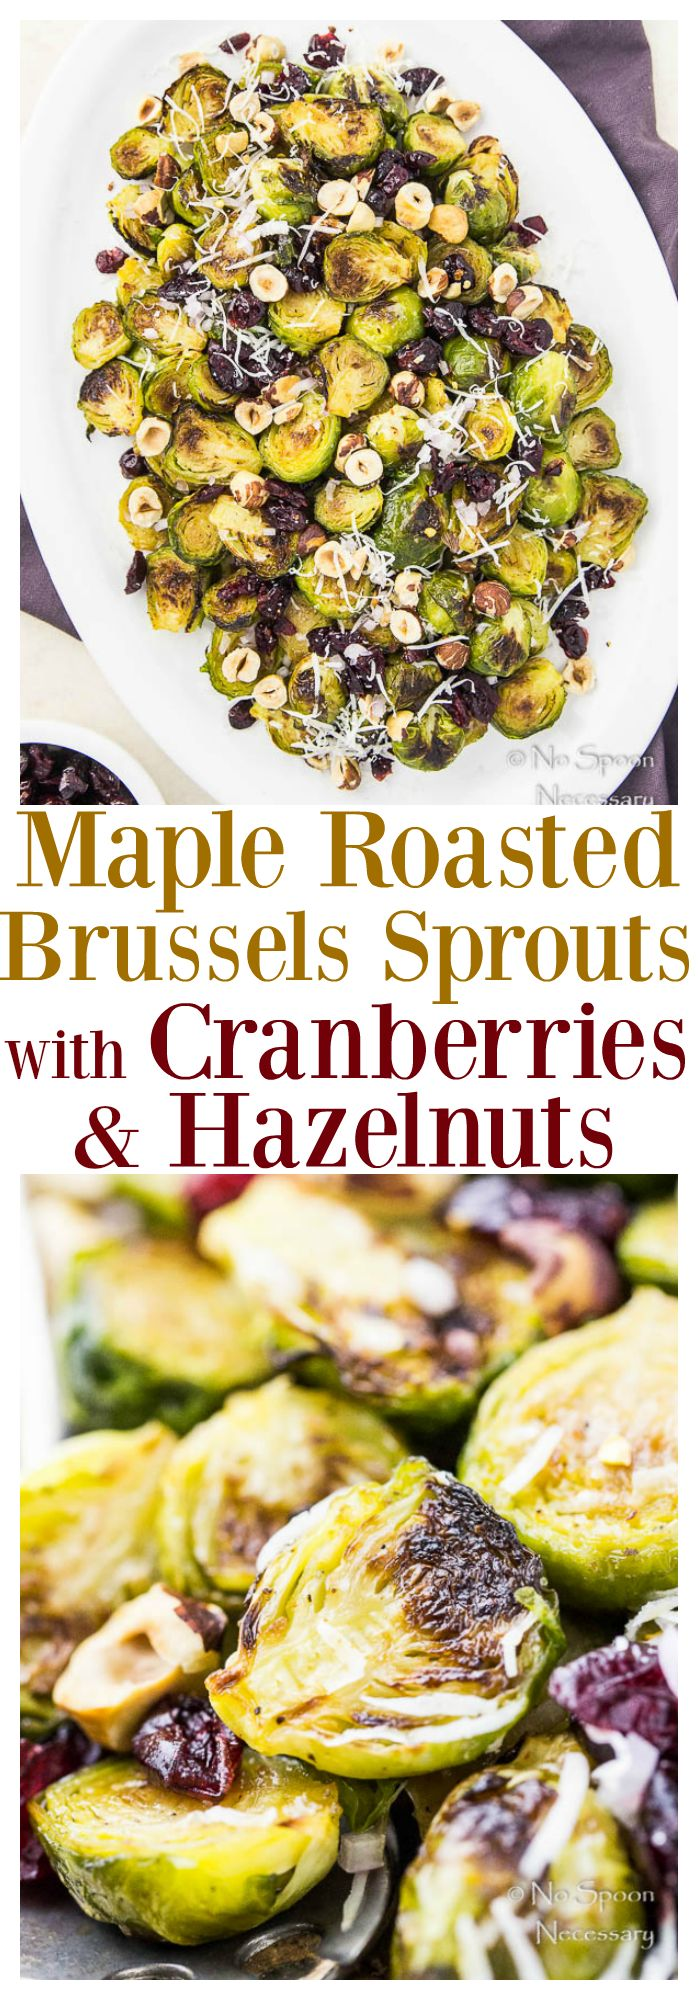 Maple Roasted Brussels Sprouts with Cranberries & Hazelnuts A Perfect #Side for #Thanksgiving and #Christmas!